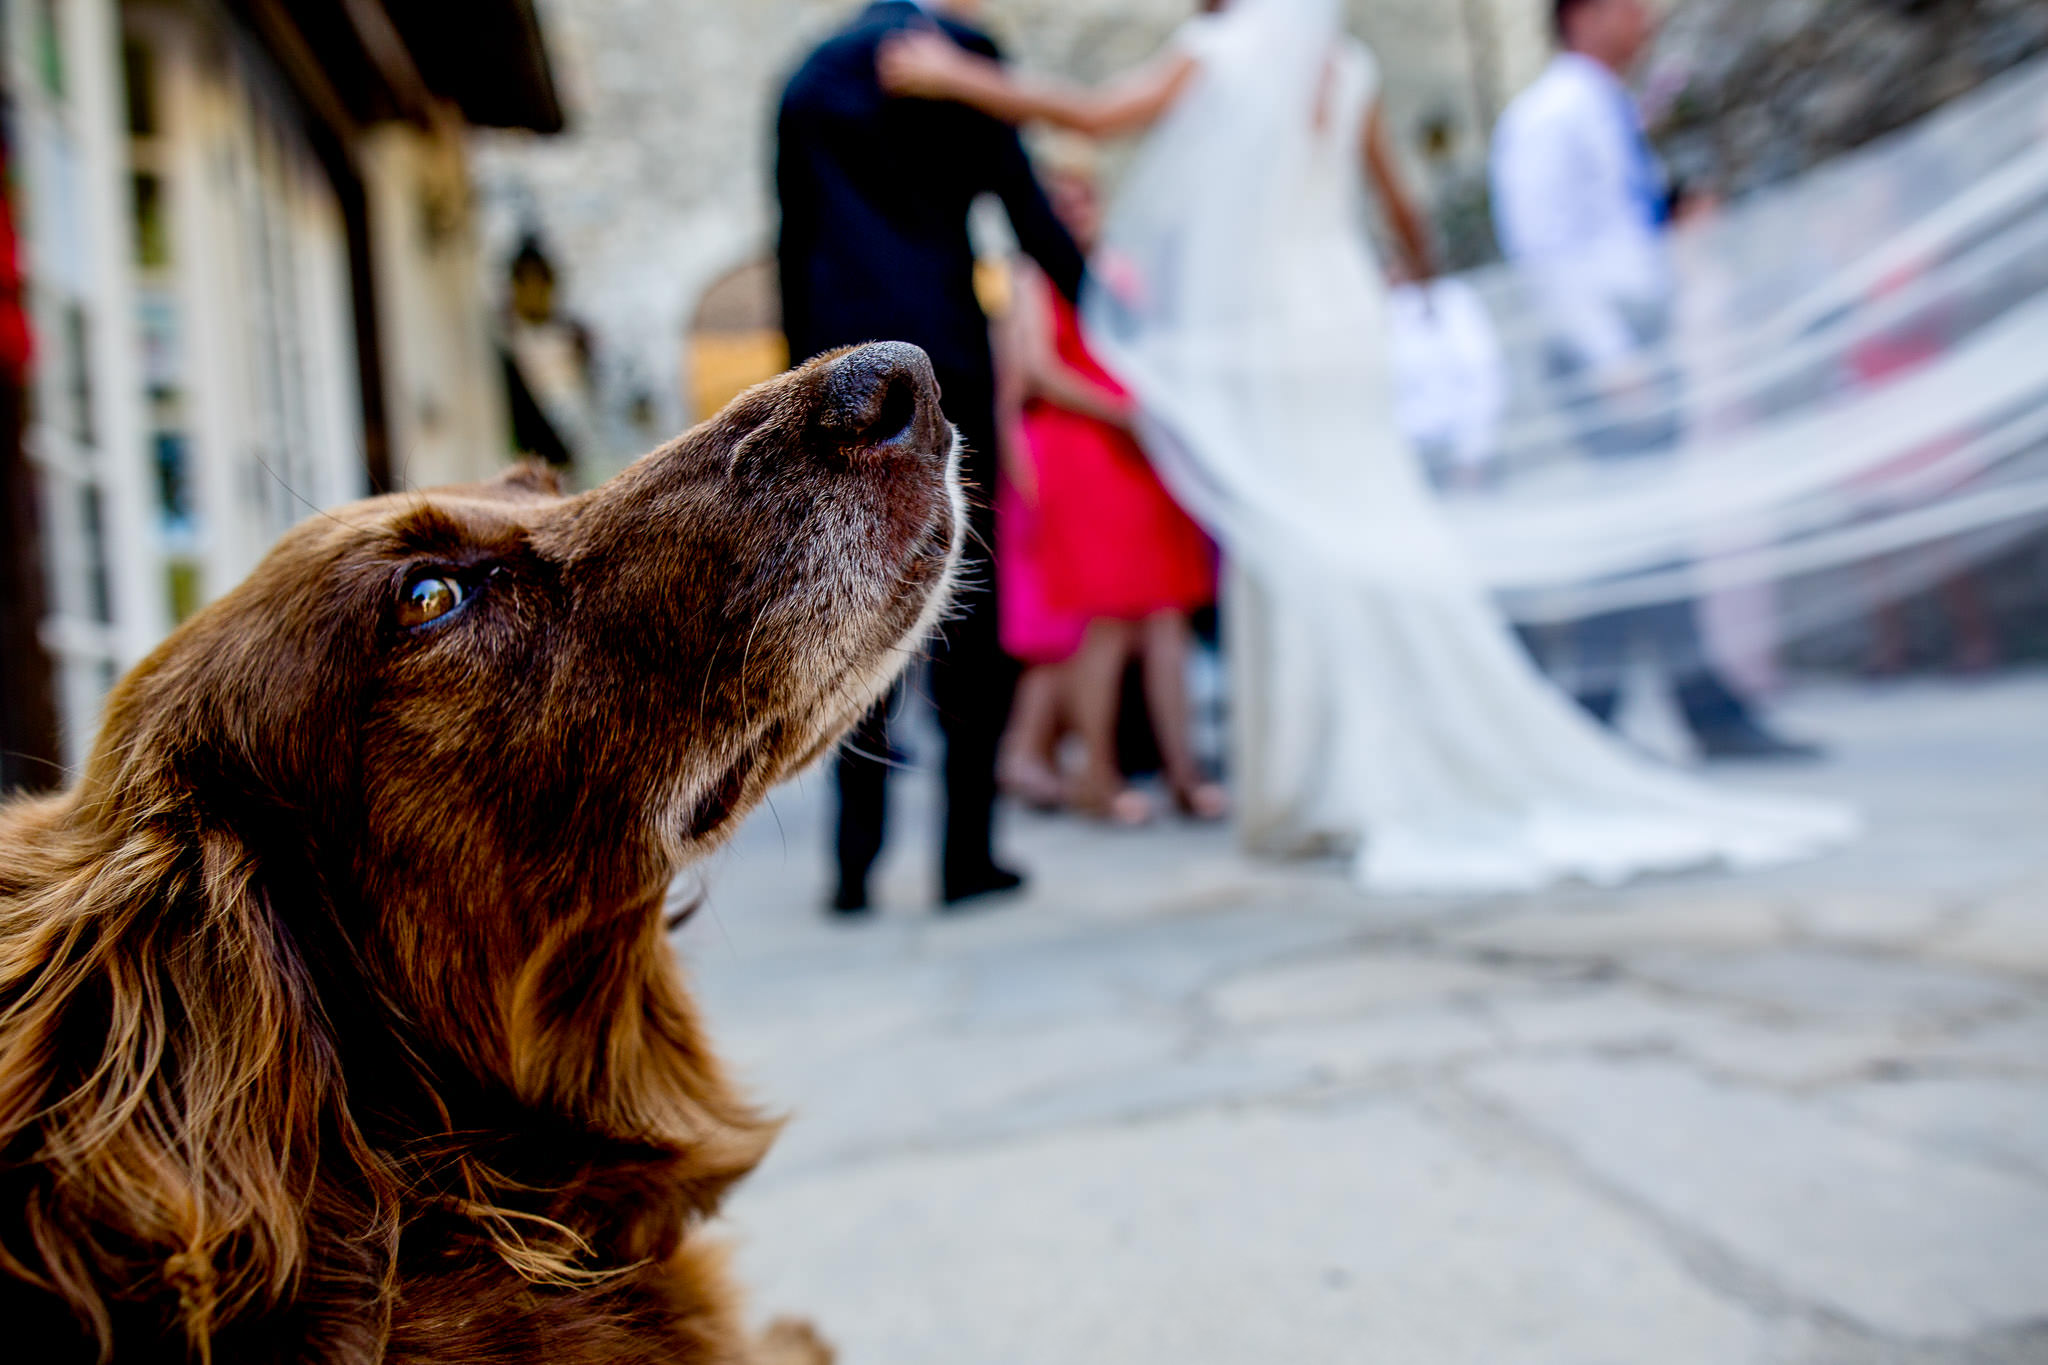 Dog during wedding ceremony Emotional hugging at chateau wedding in Cirque de Navacelles outside Montpellier France